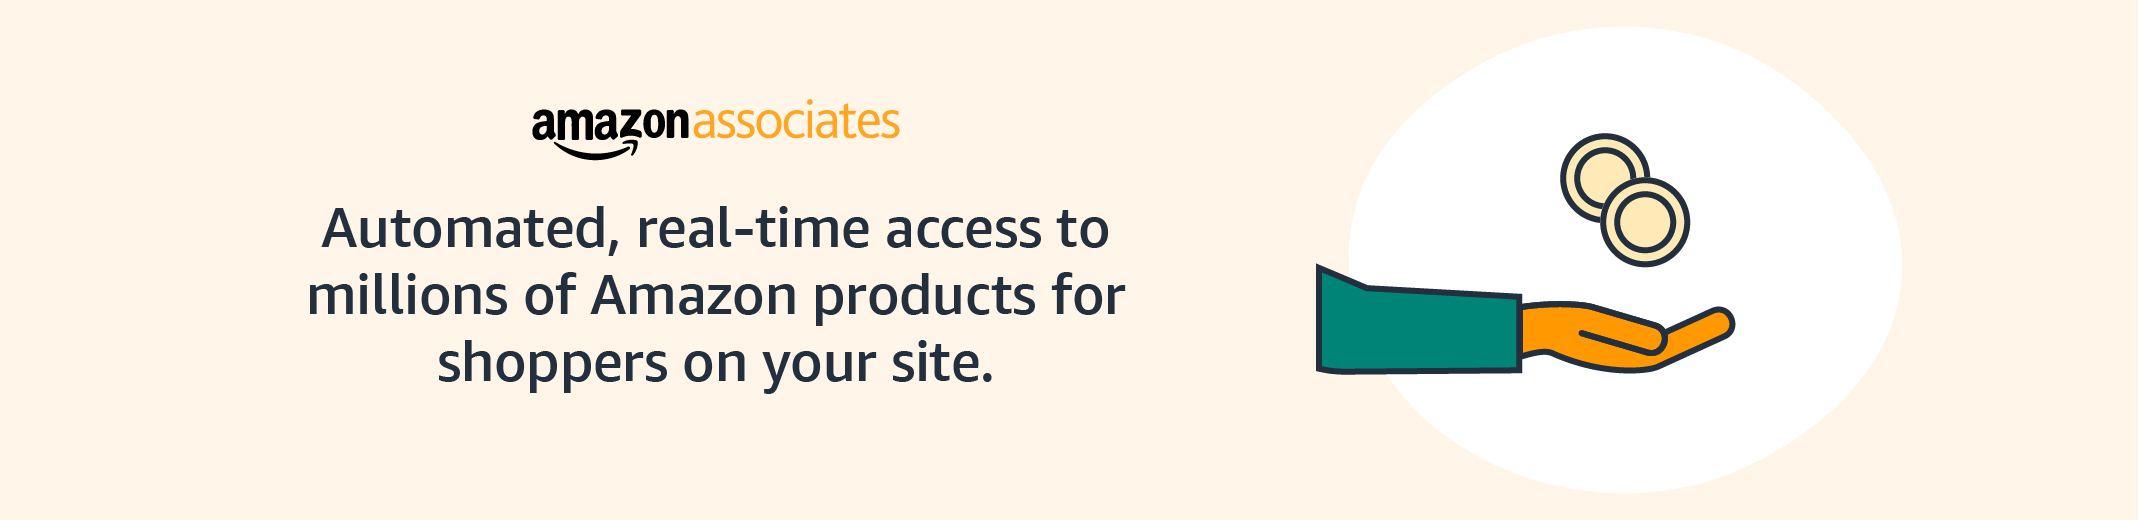 Automated, real-time access to millions of Amazon products for shoppers on your site.